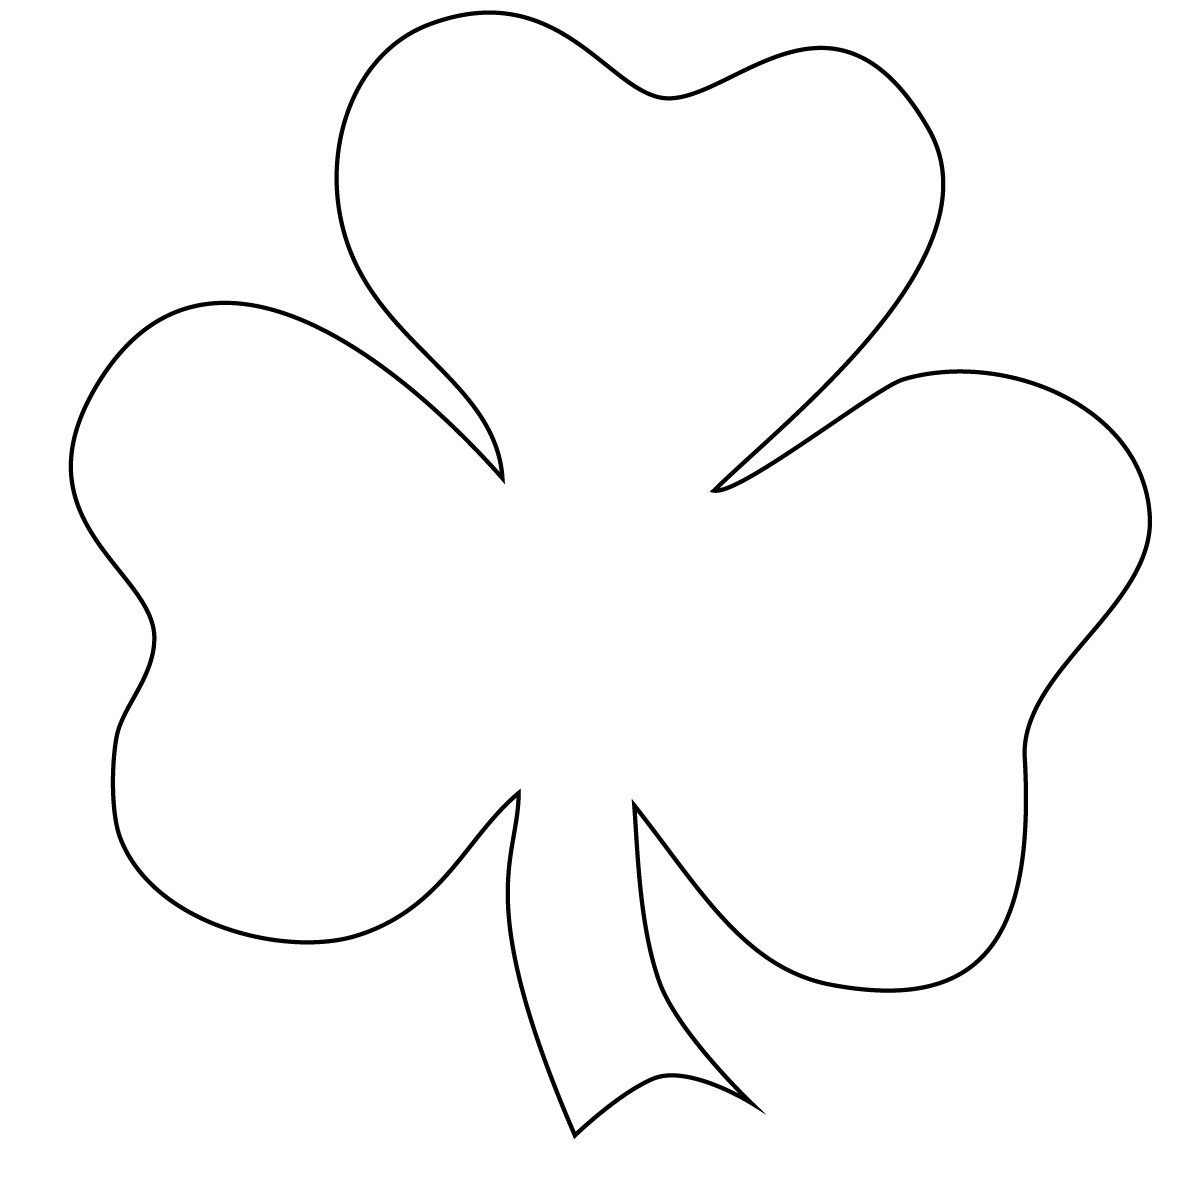 graphic relating to Printable Shamrock Coloring Pages titled No cost Printable Shamrock Coloring Webpages For Youngsters